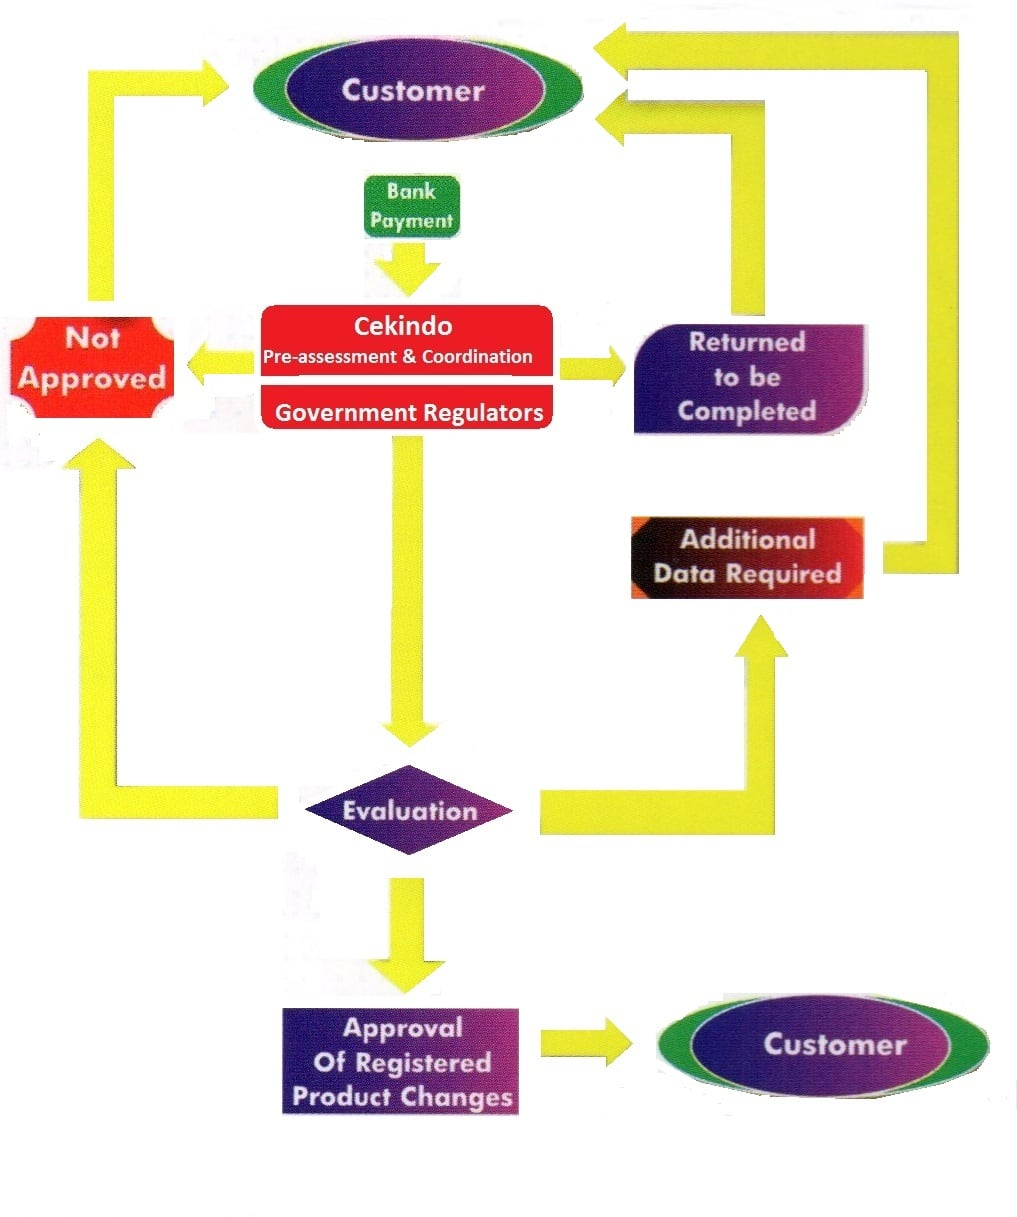 Process flow for product registration